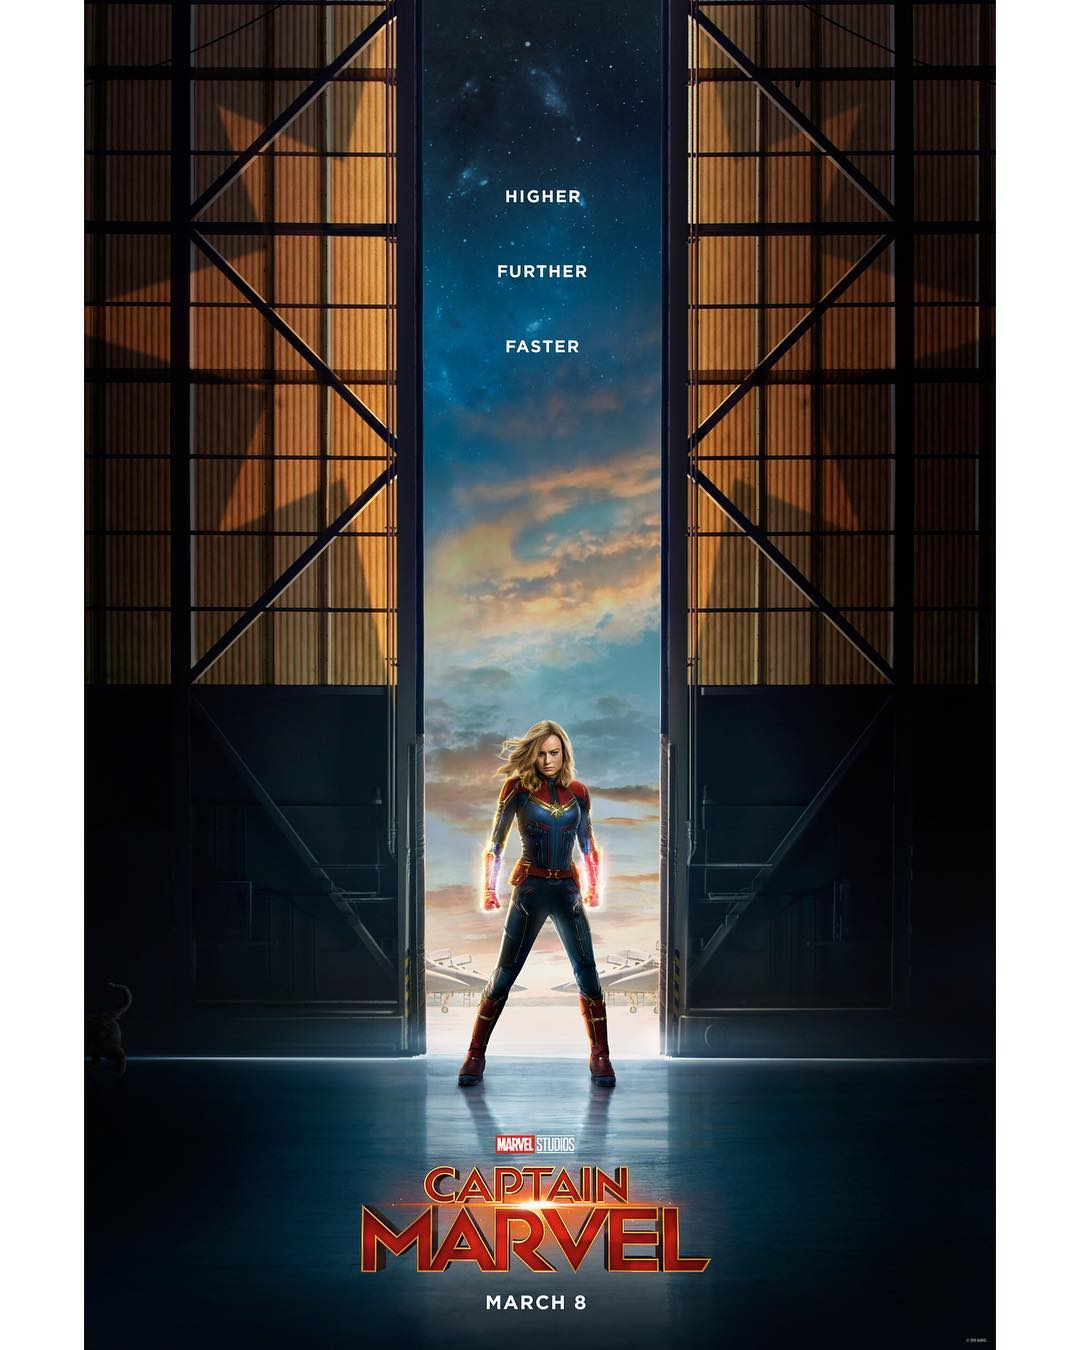 Chris Evans Shows Some Love For The Captain Marvel Trailer